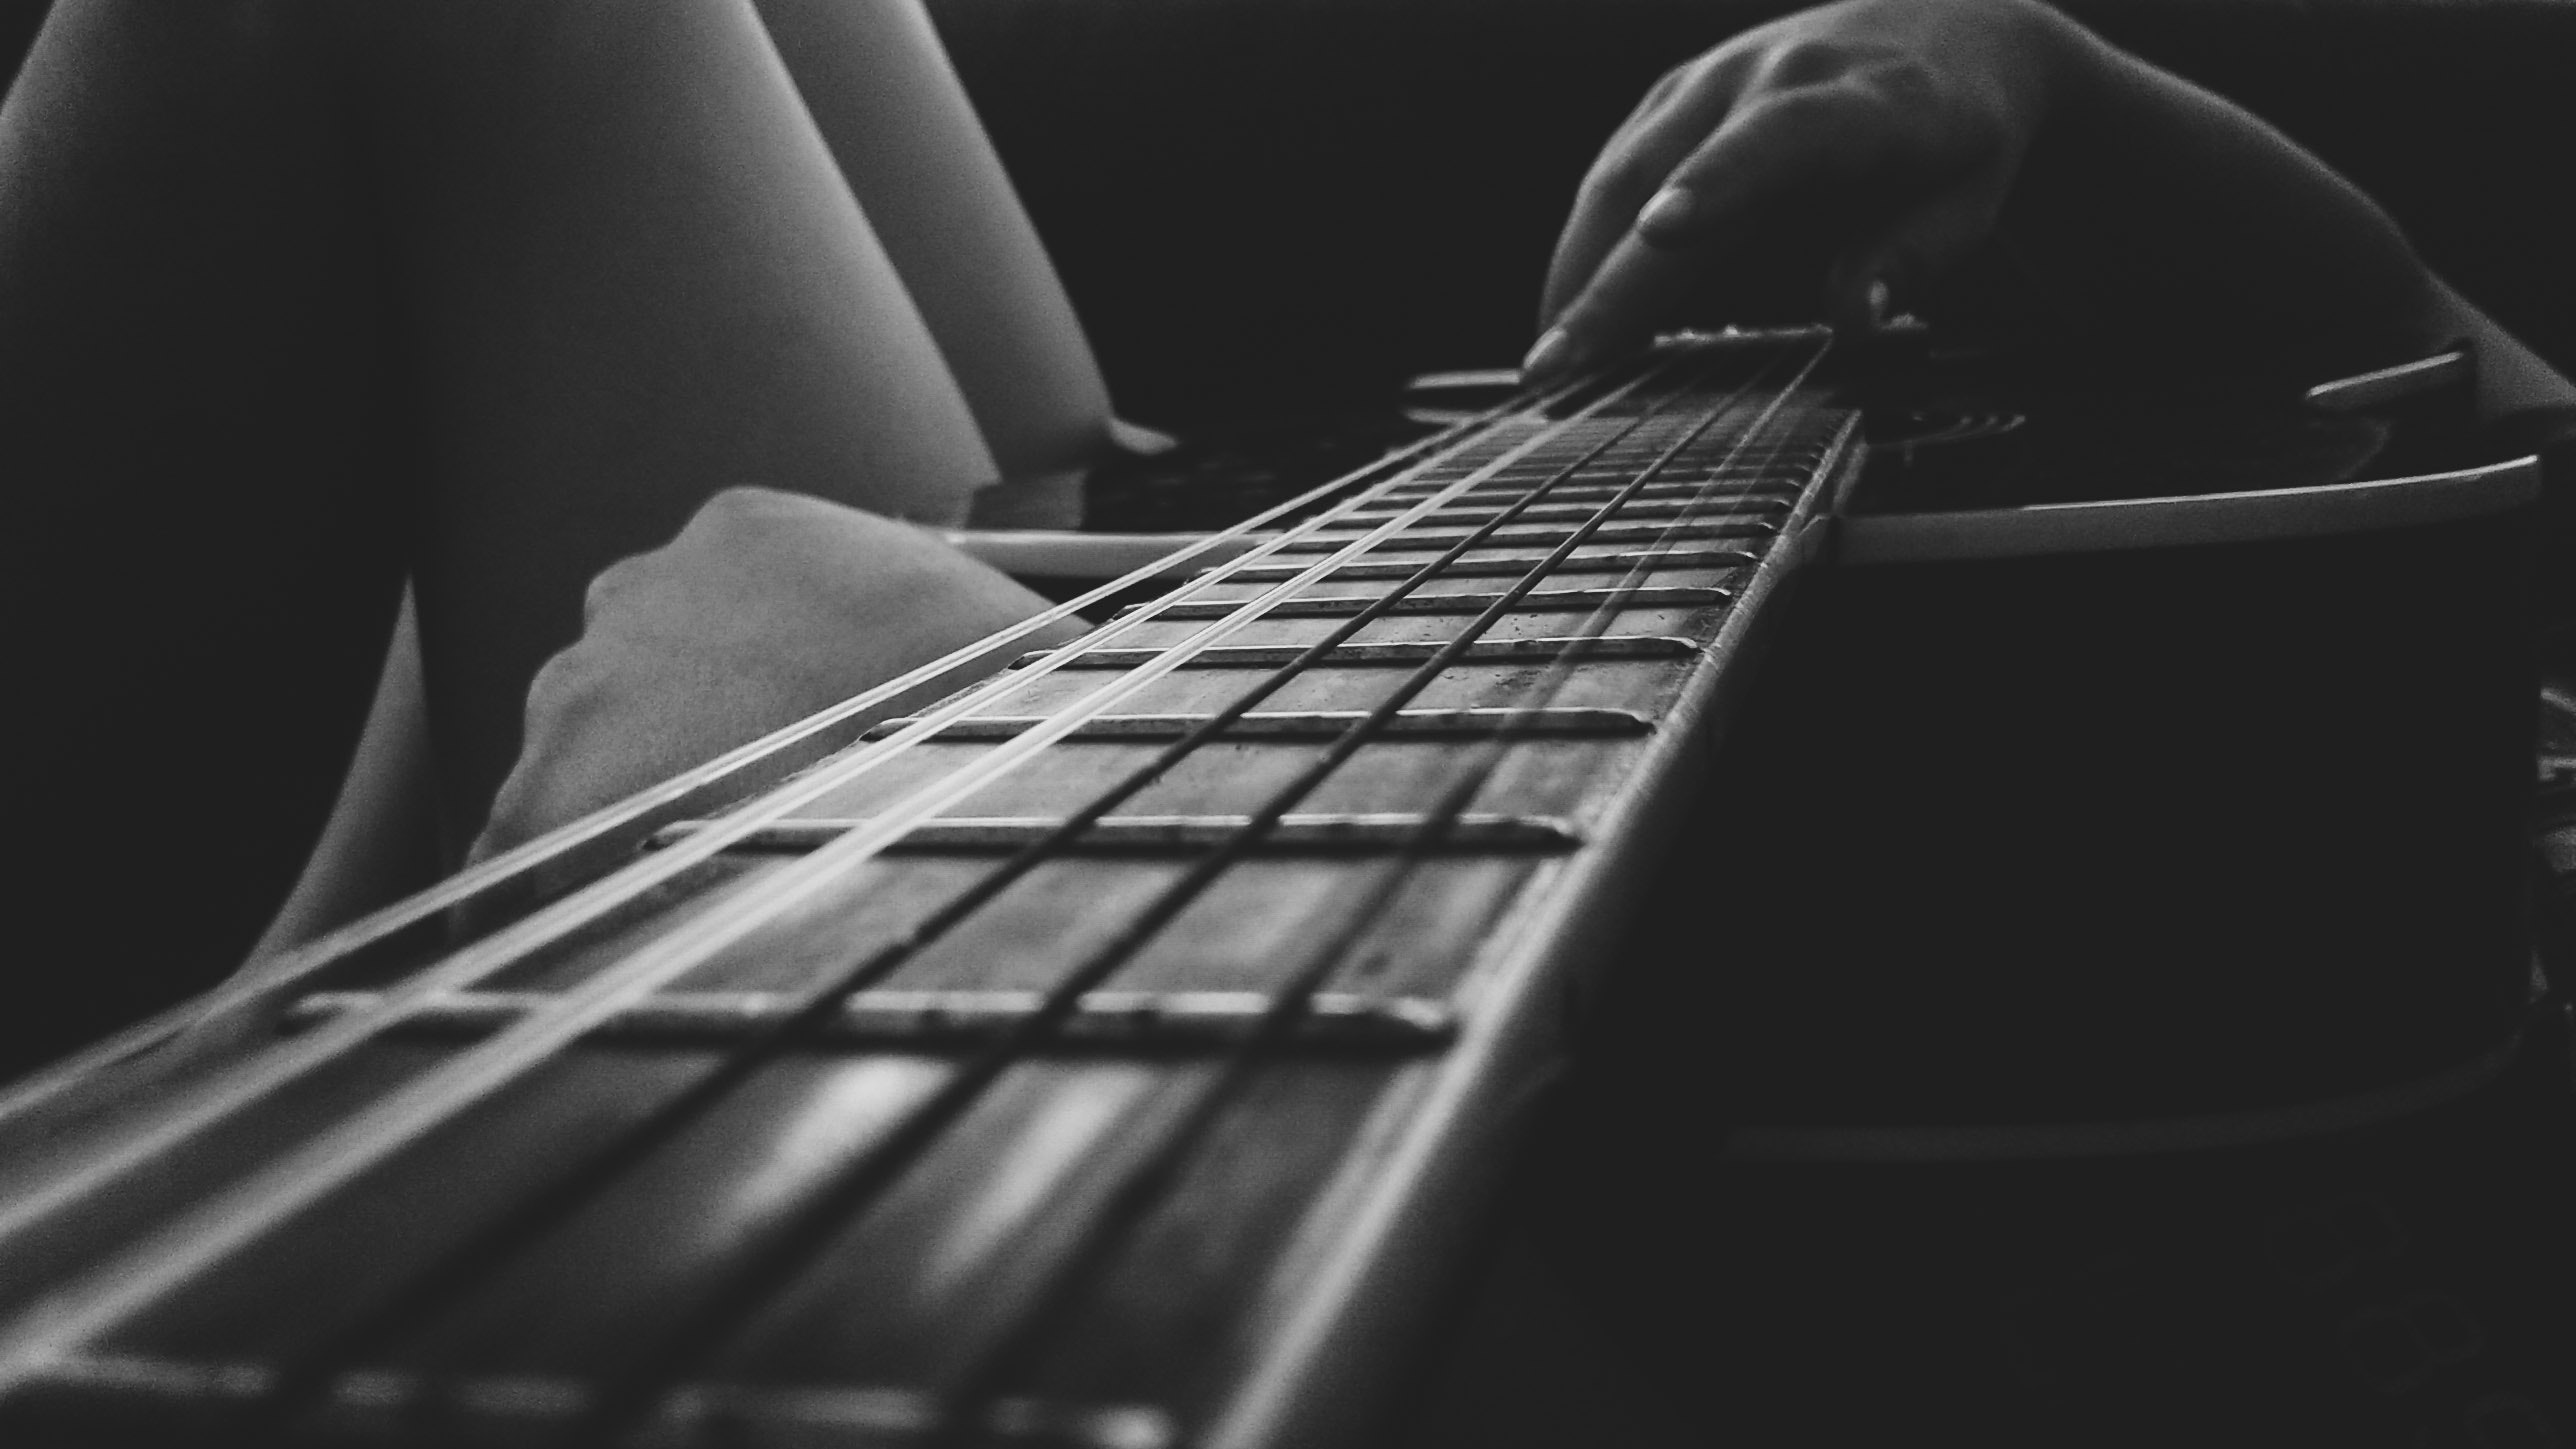 Person Holding An Acoustic Guitar Free Stock Photo